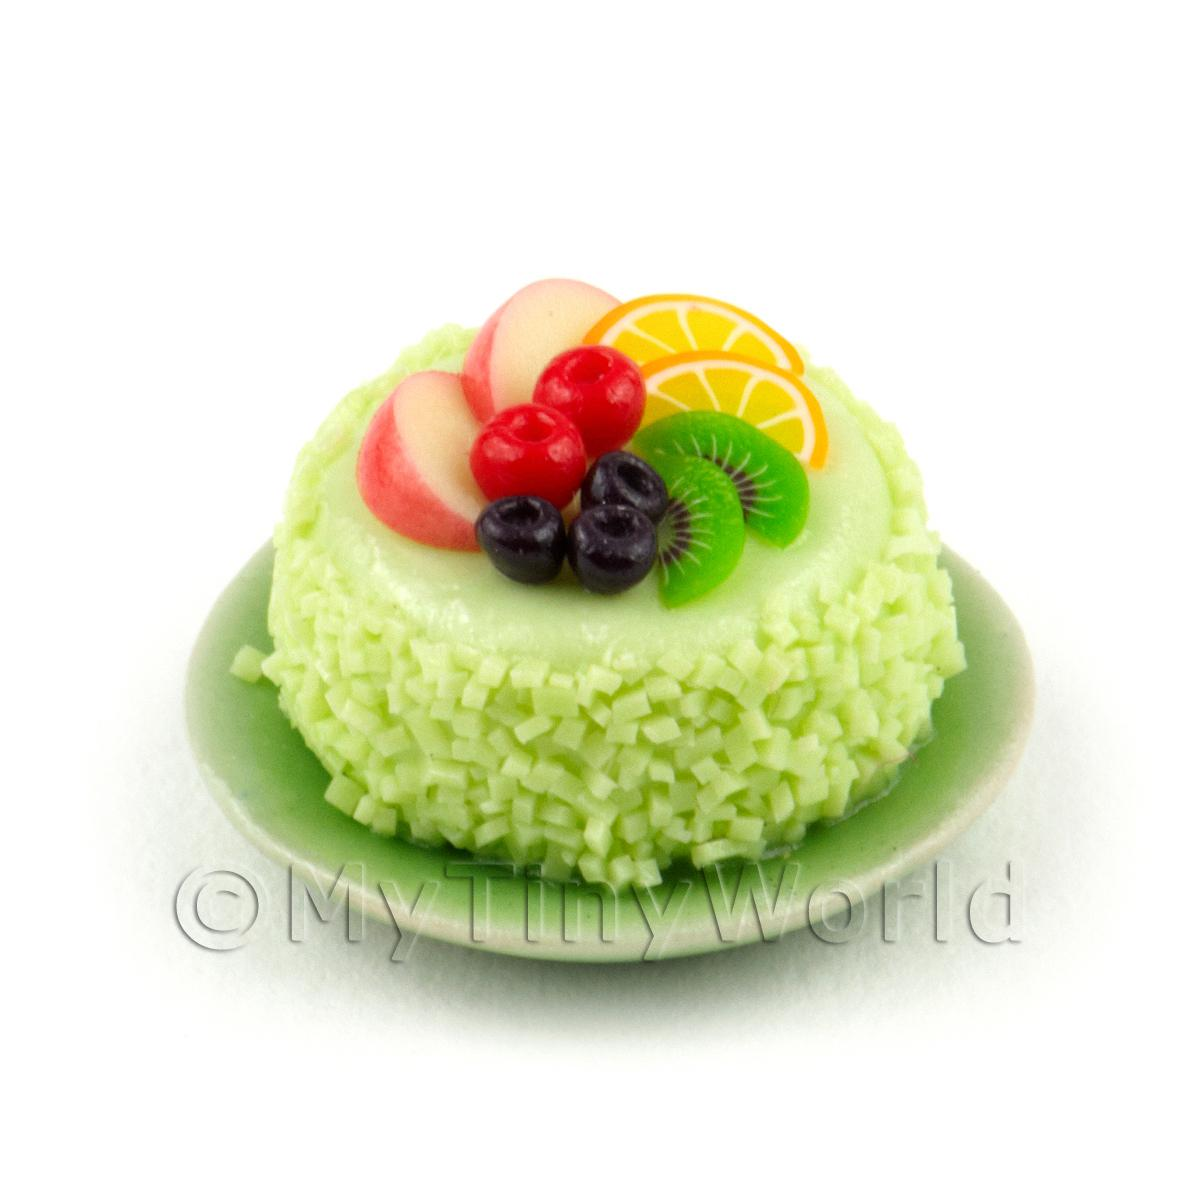 Miniature Miniature Fruit Topped Cake On a Plate